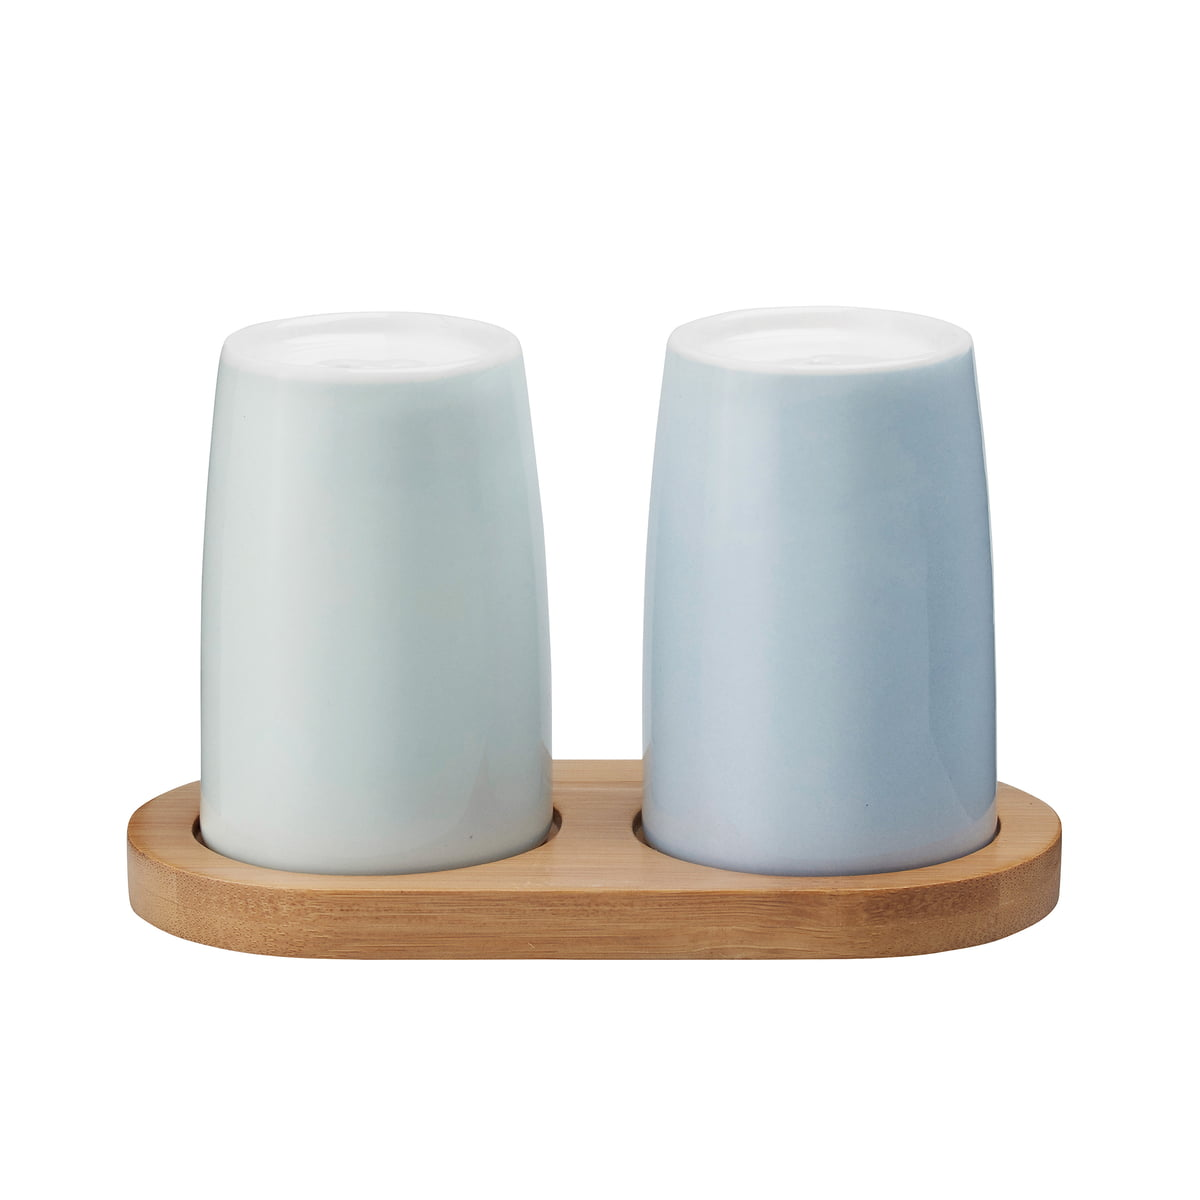 emma salt and pepper shakers by stelton. Black Bedroom Furniture Sets. Home Design Ideas